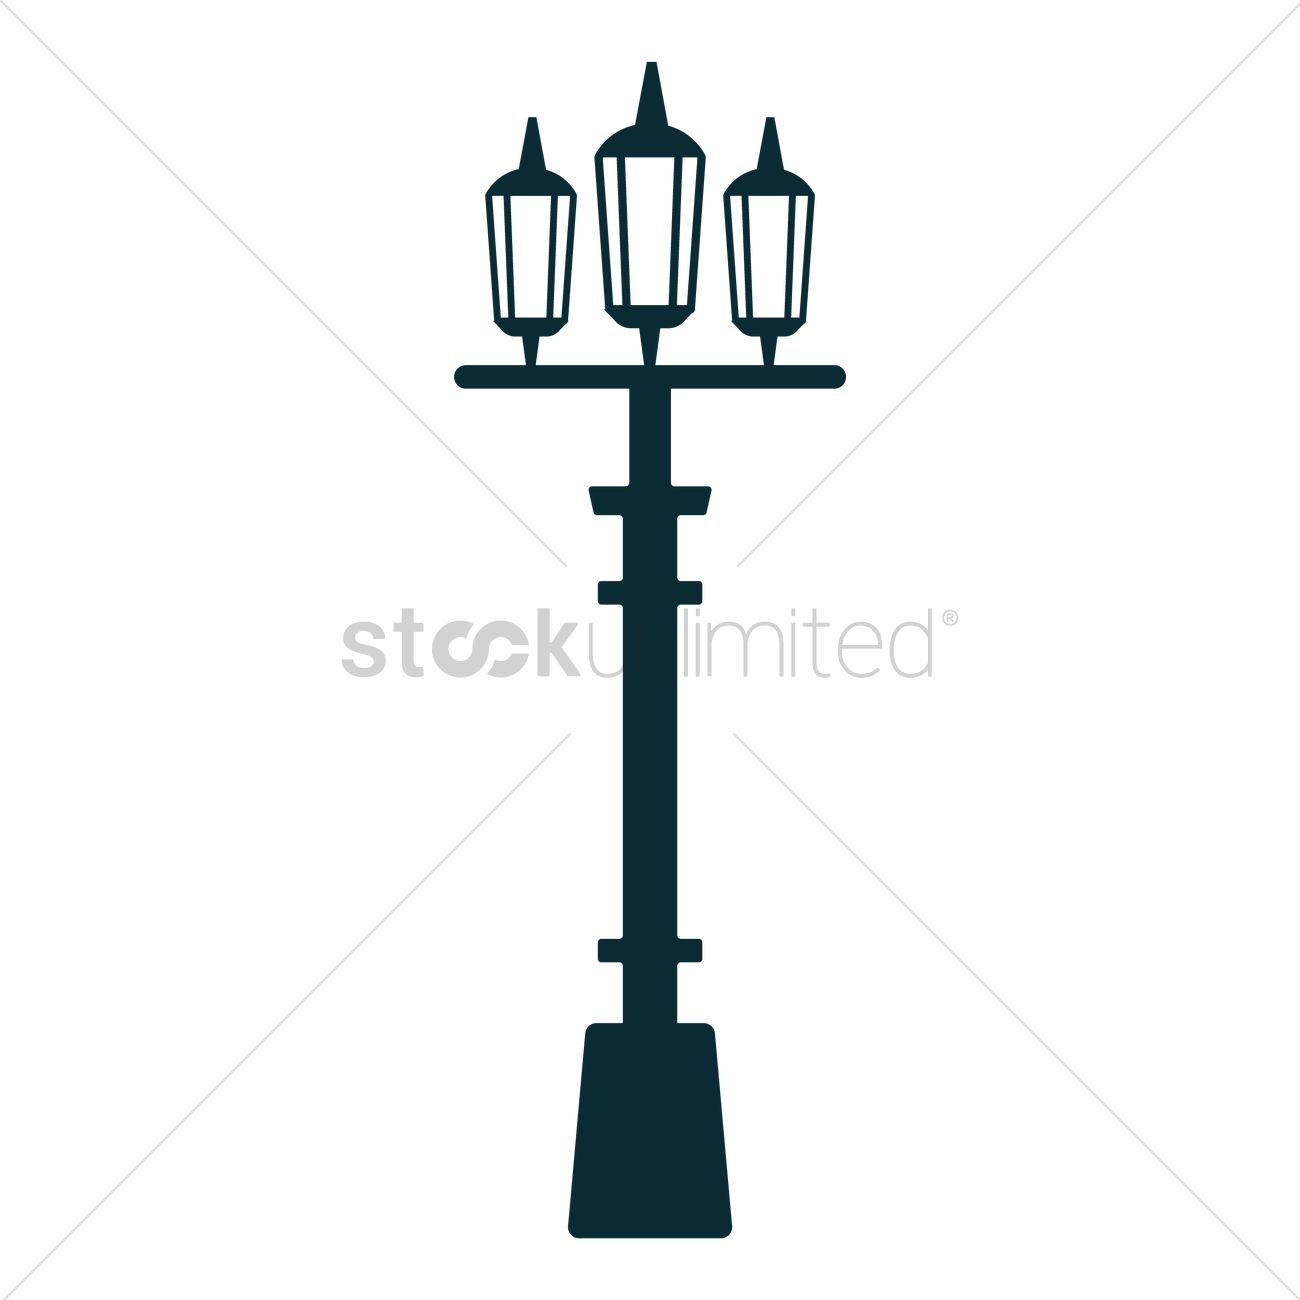 image graphic vector lamp stockunlimited london post street